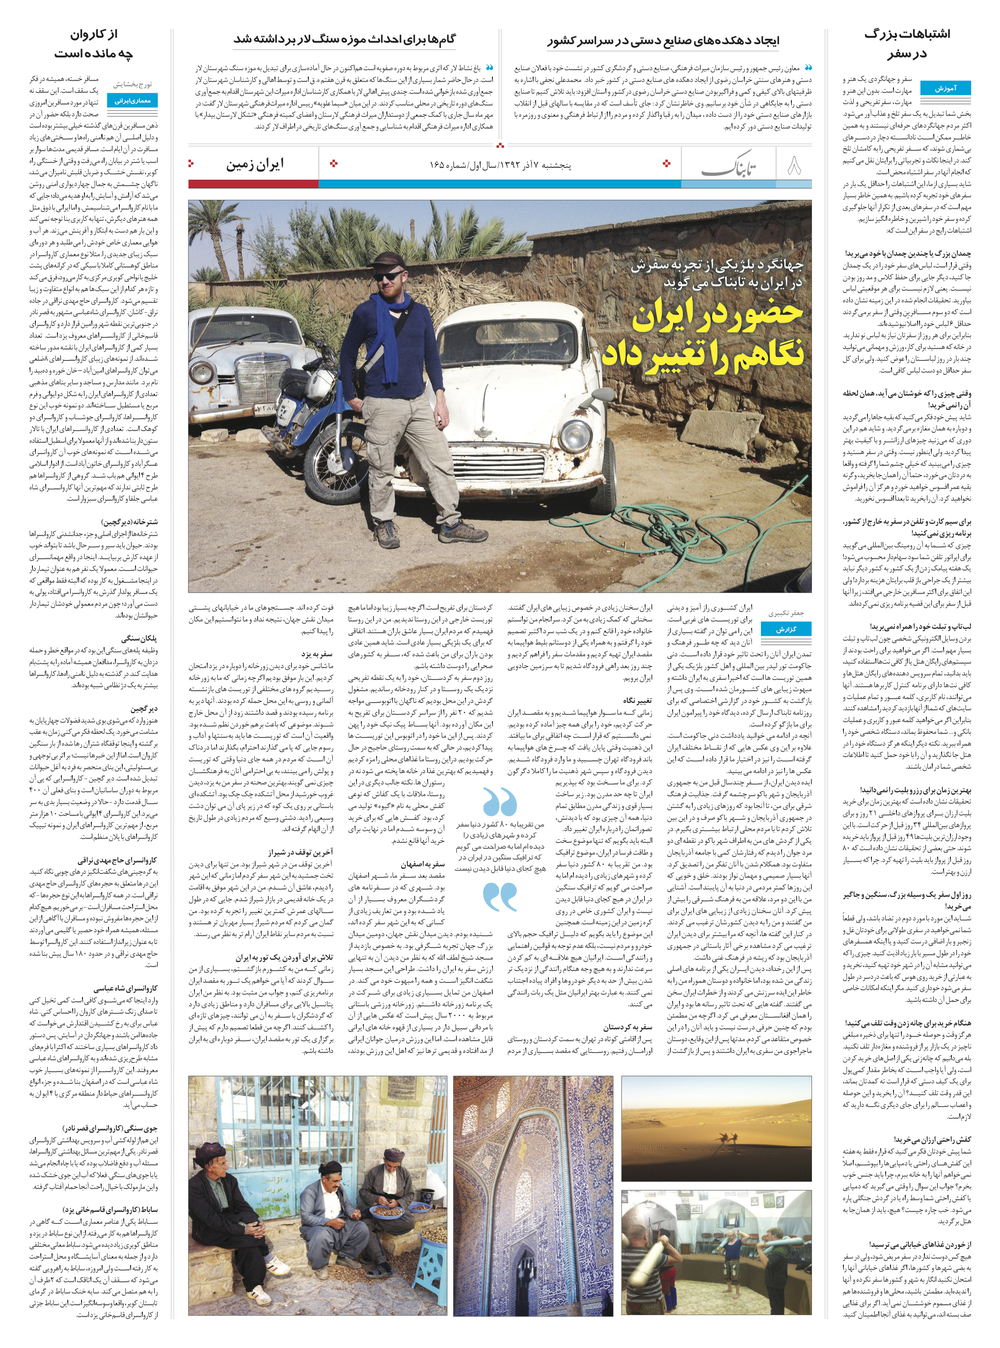 While traveling in Iran, I was suddenly asked to write an article about my impressions. Of course I took the challenge.